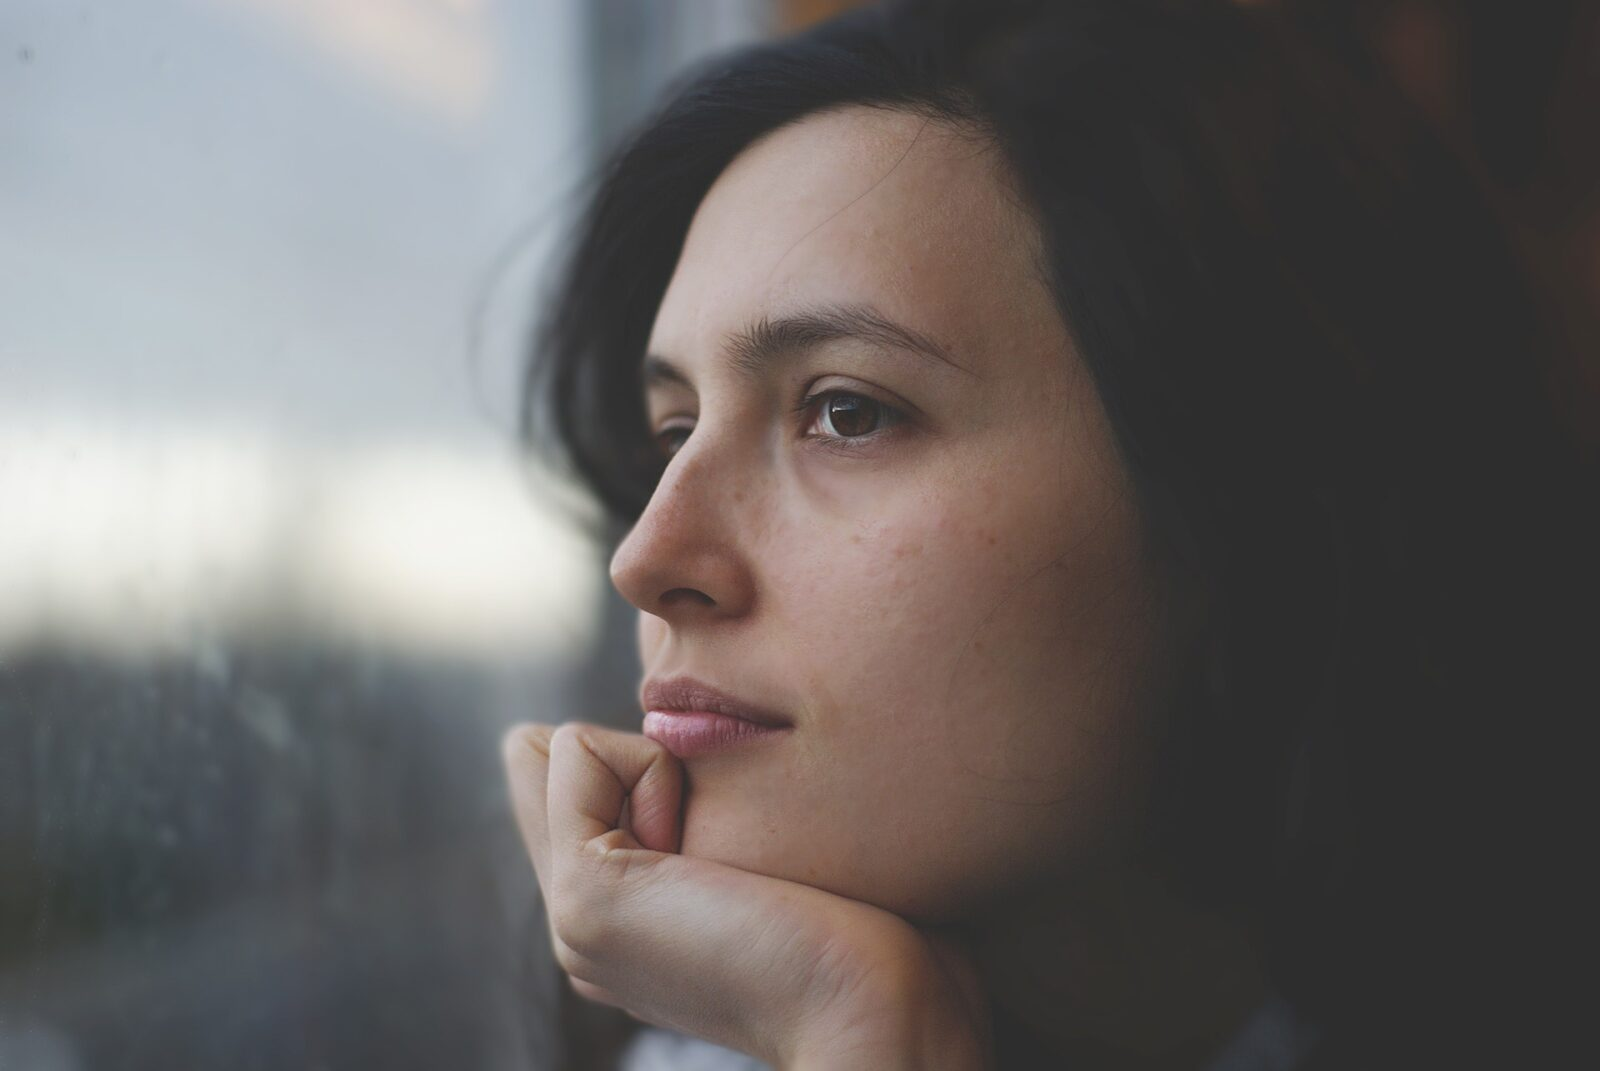 woman-staring-out-window-thinking